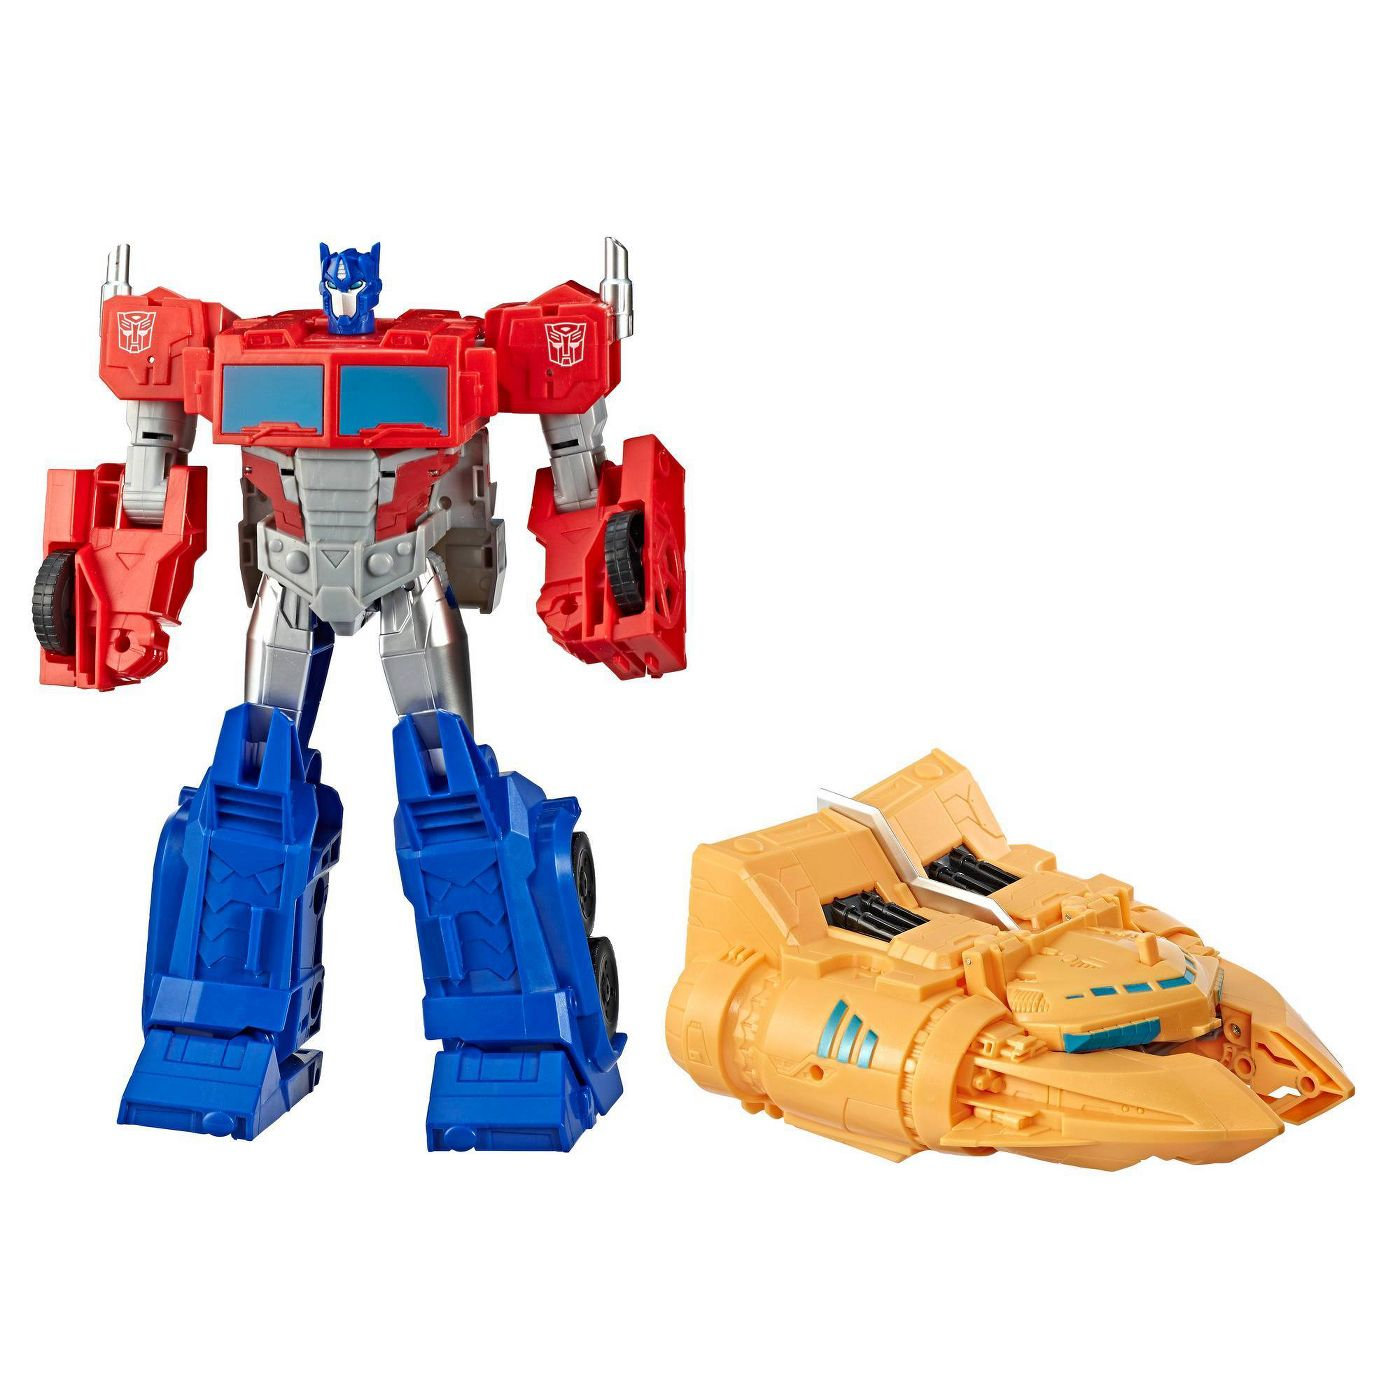 Transformers Cyberverse Spark Armor Ark Power Optimus Prime Toys